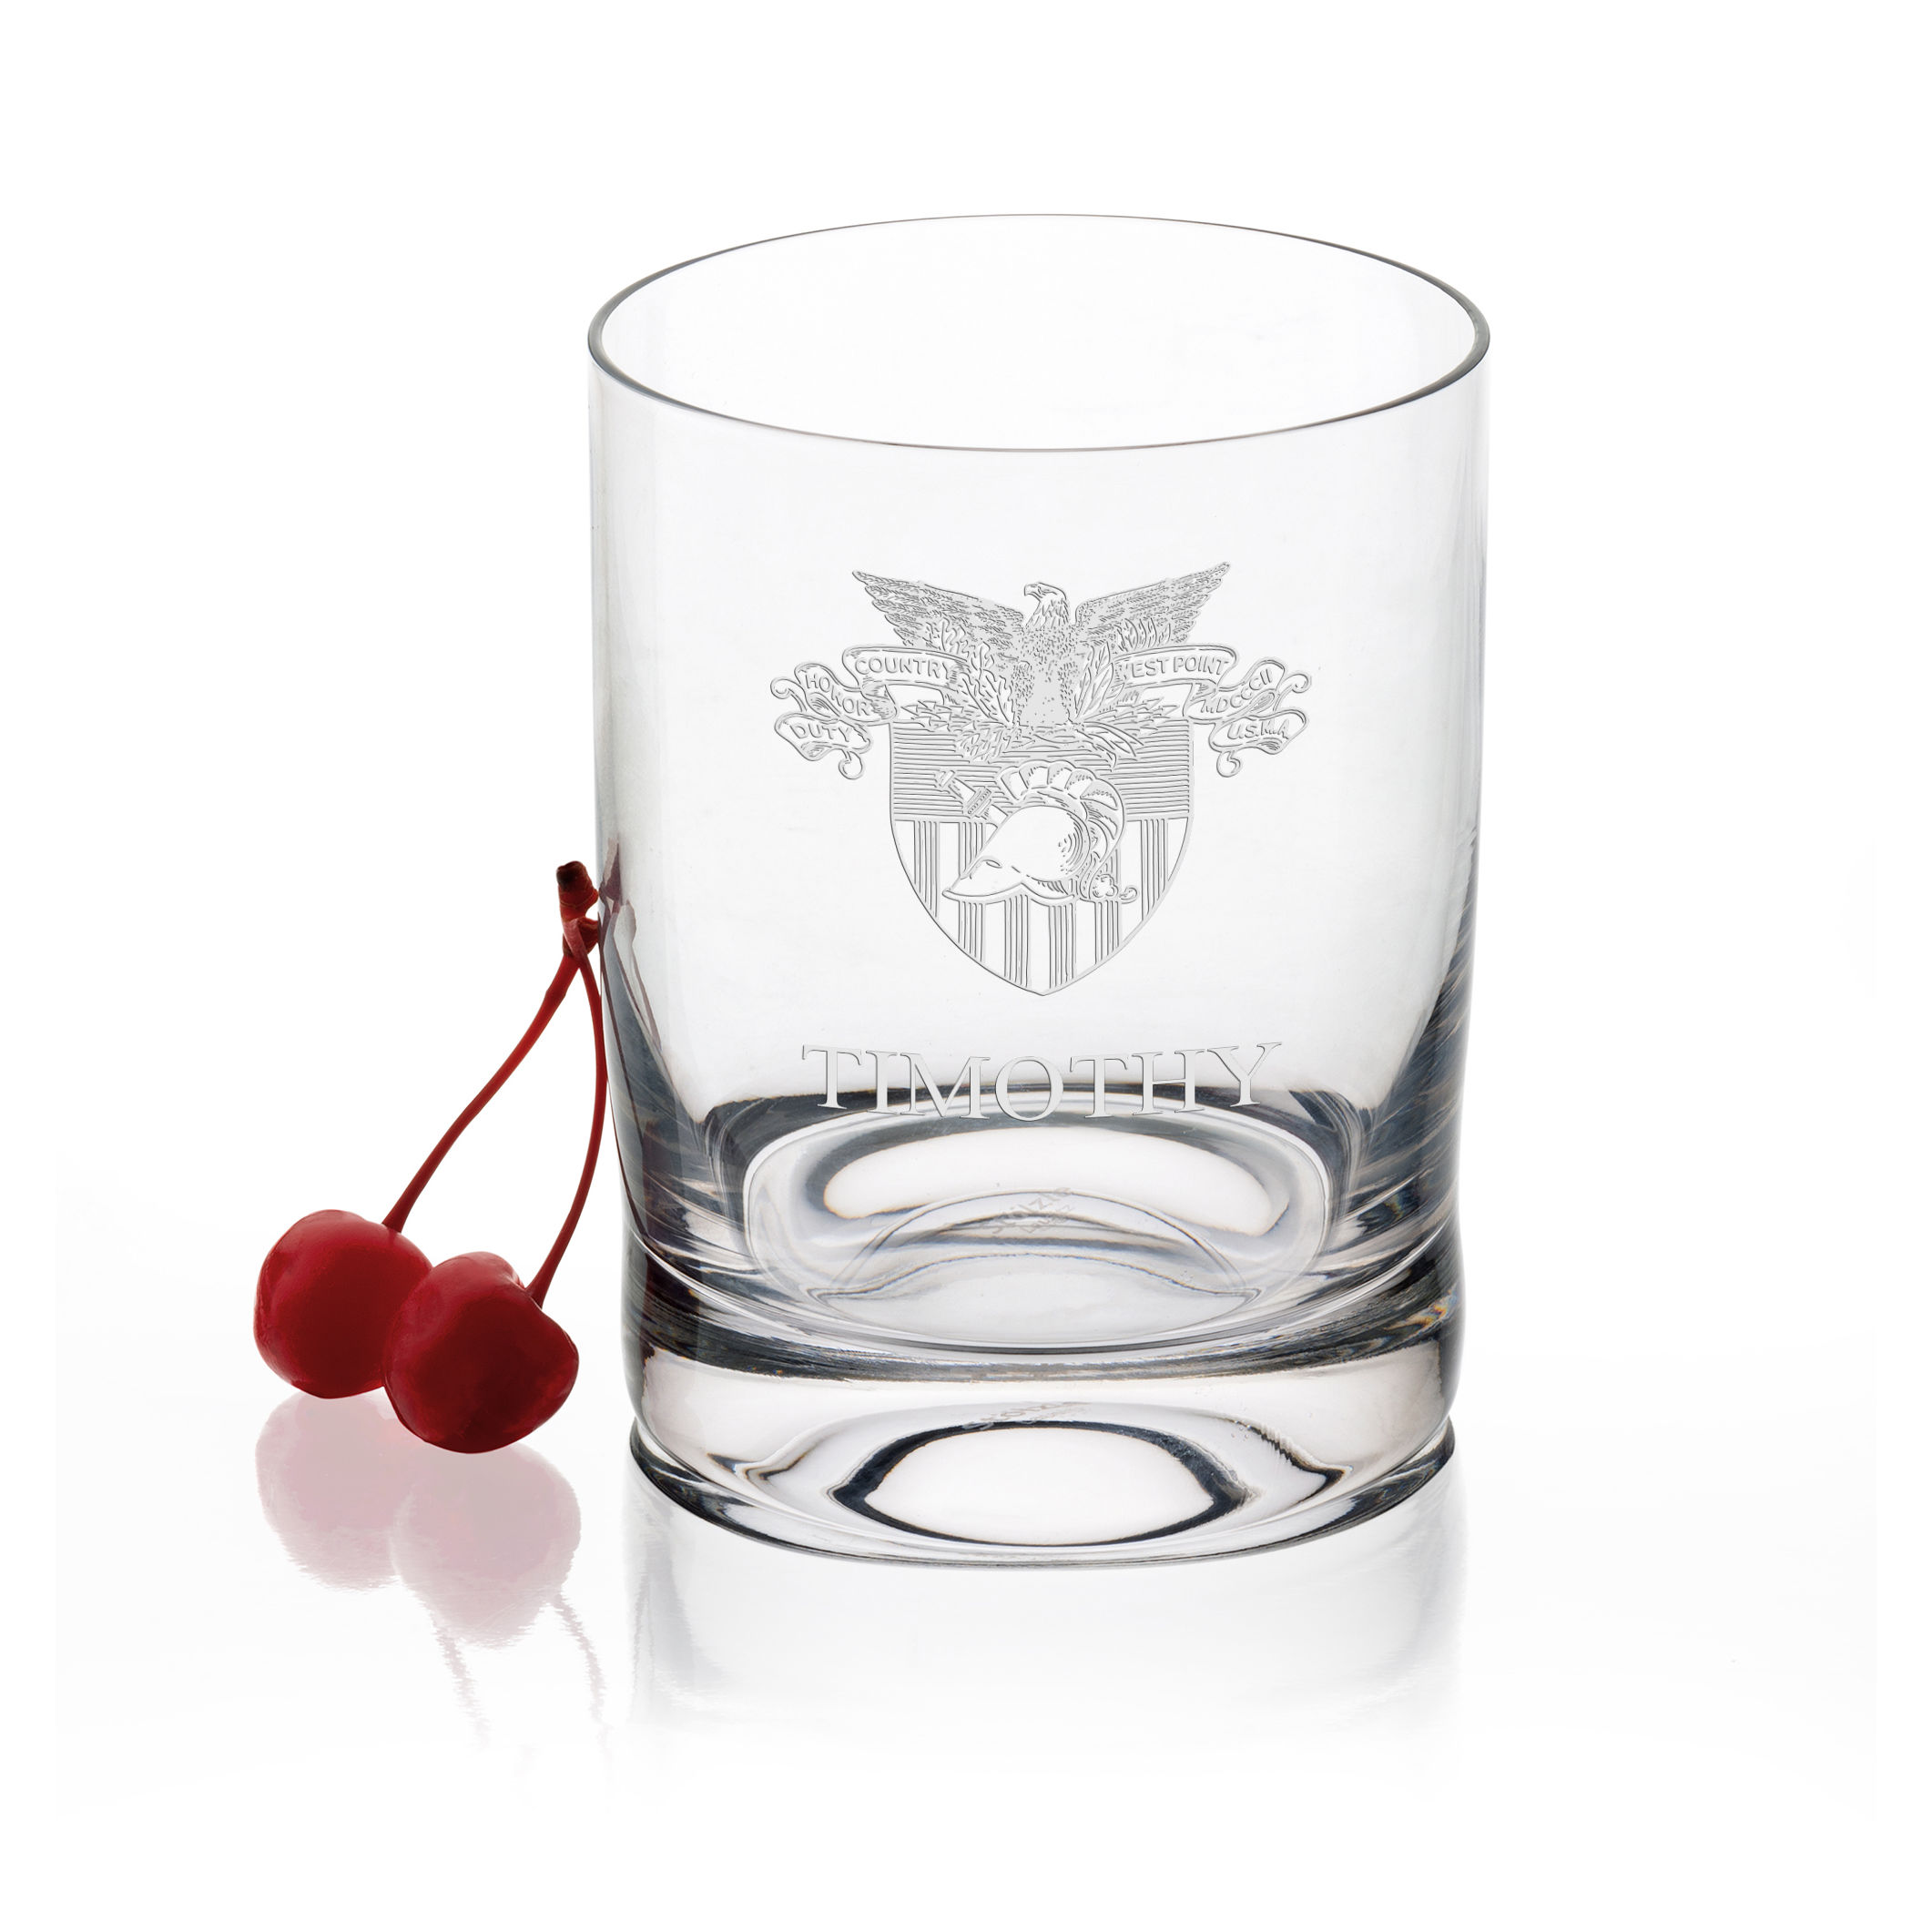 West Point Tumbler Glasses - Set of 2